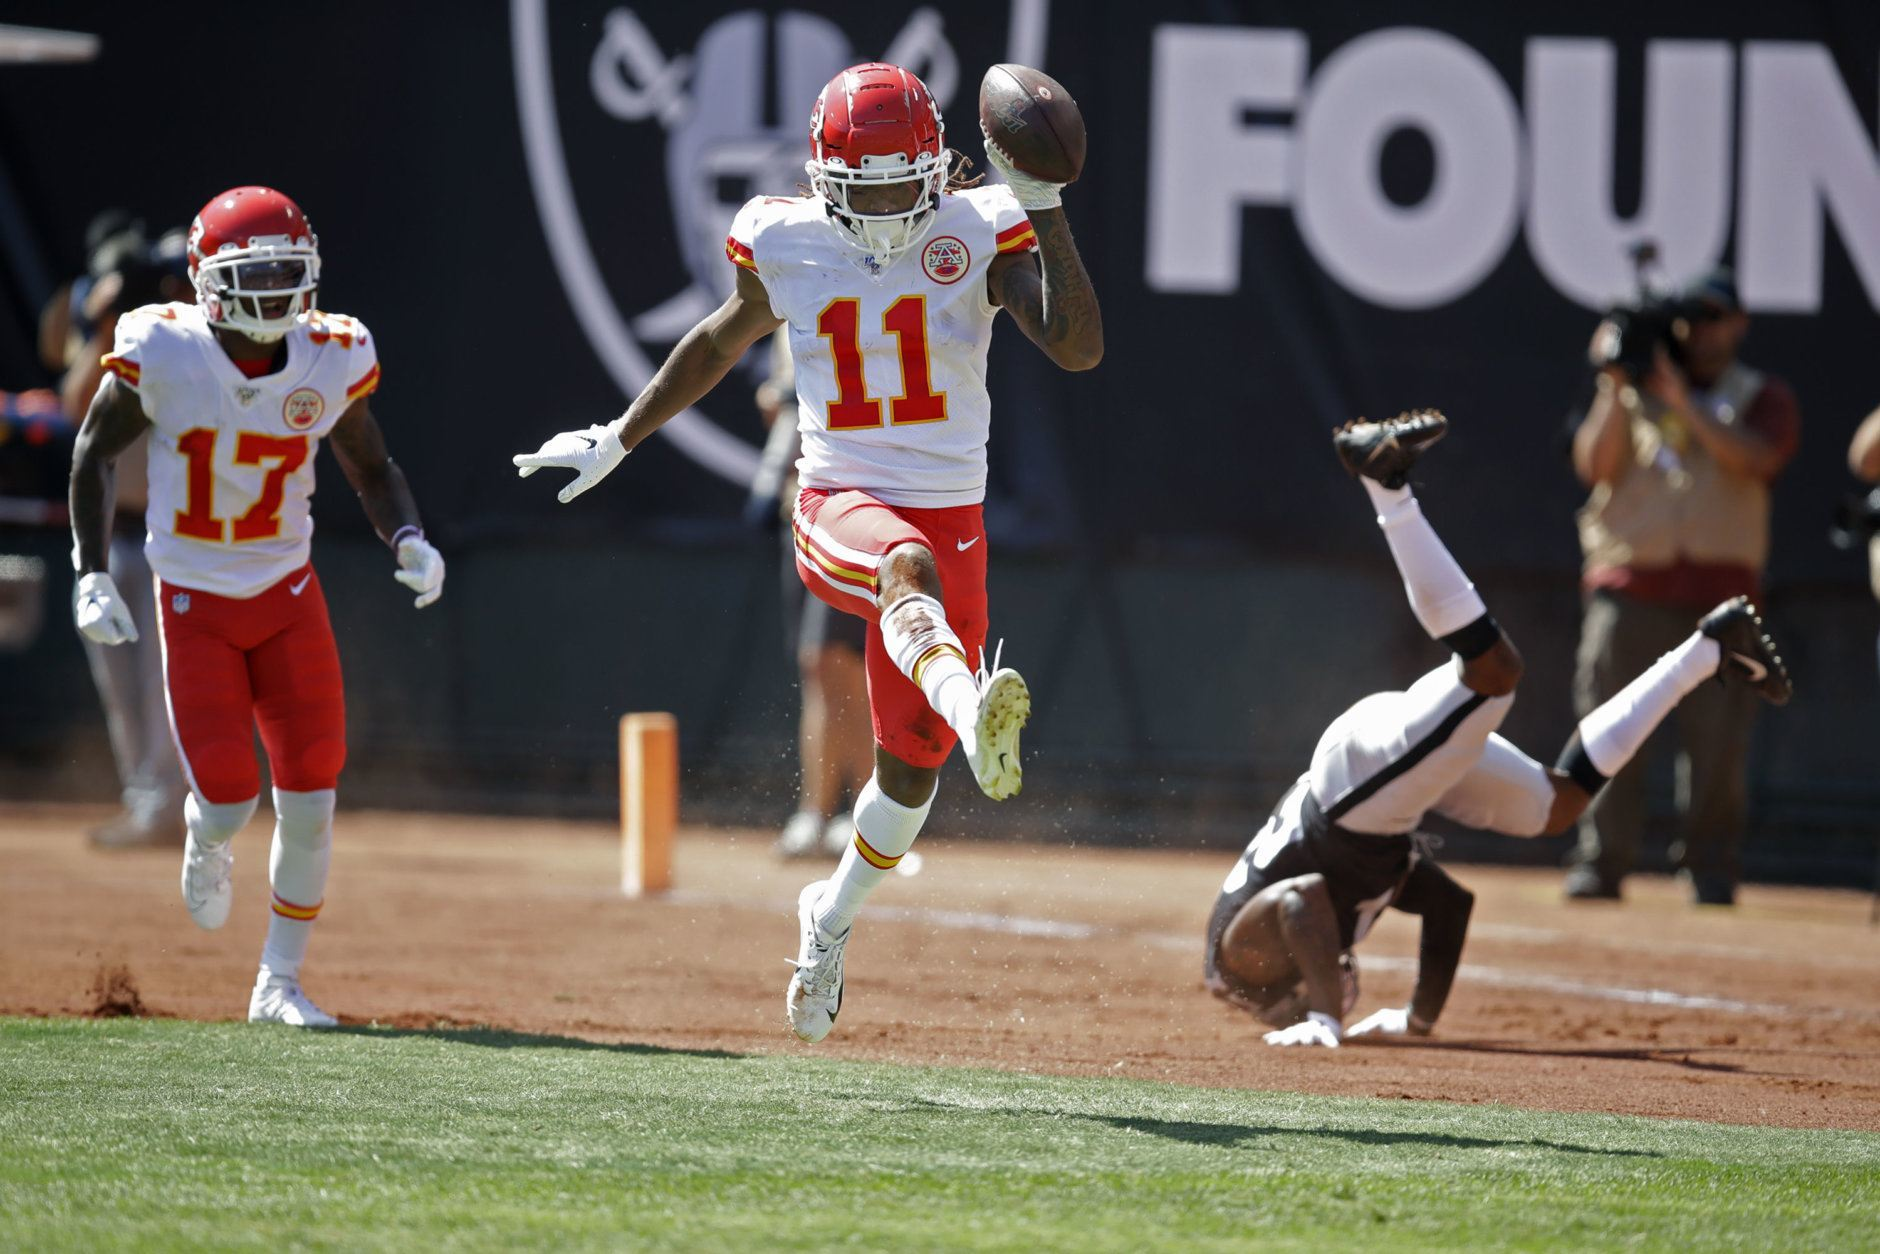 "<p><b><i>Chiefs 28</i></b><br /> <b><i>Raiders 10</i></b></p> <p>Thankfully, this was the last time we had to witness the sports abomination of seeing <a href=""https://profootballtalk.nbcsports.com/2019/09/10/chiefs-raiders-on-sunday-will-be-last-nfl-game-on-a-baseball-infield/"">football played on a baseball field</a>. If only we could ensure this is the last time we have to witness another Gruden-coached abomination …</p> <p>Oh, and a duel between dual threats Patrick Mahomes and Lamar Jackson next week? Yes, please.</p>"